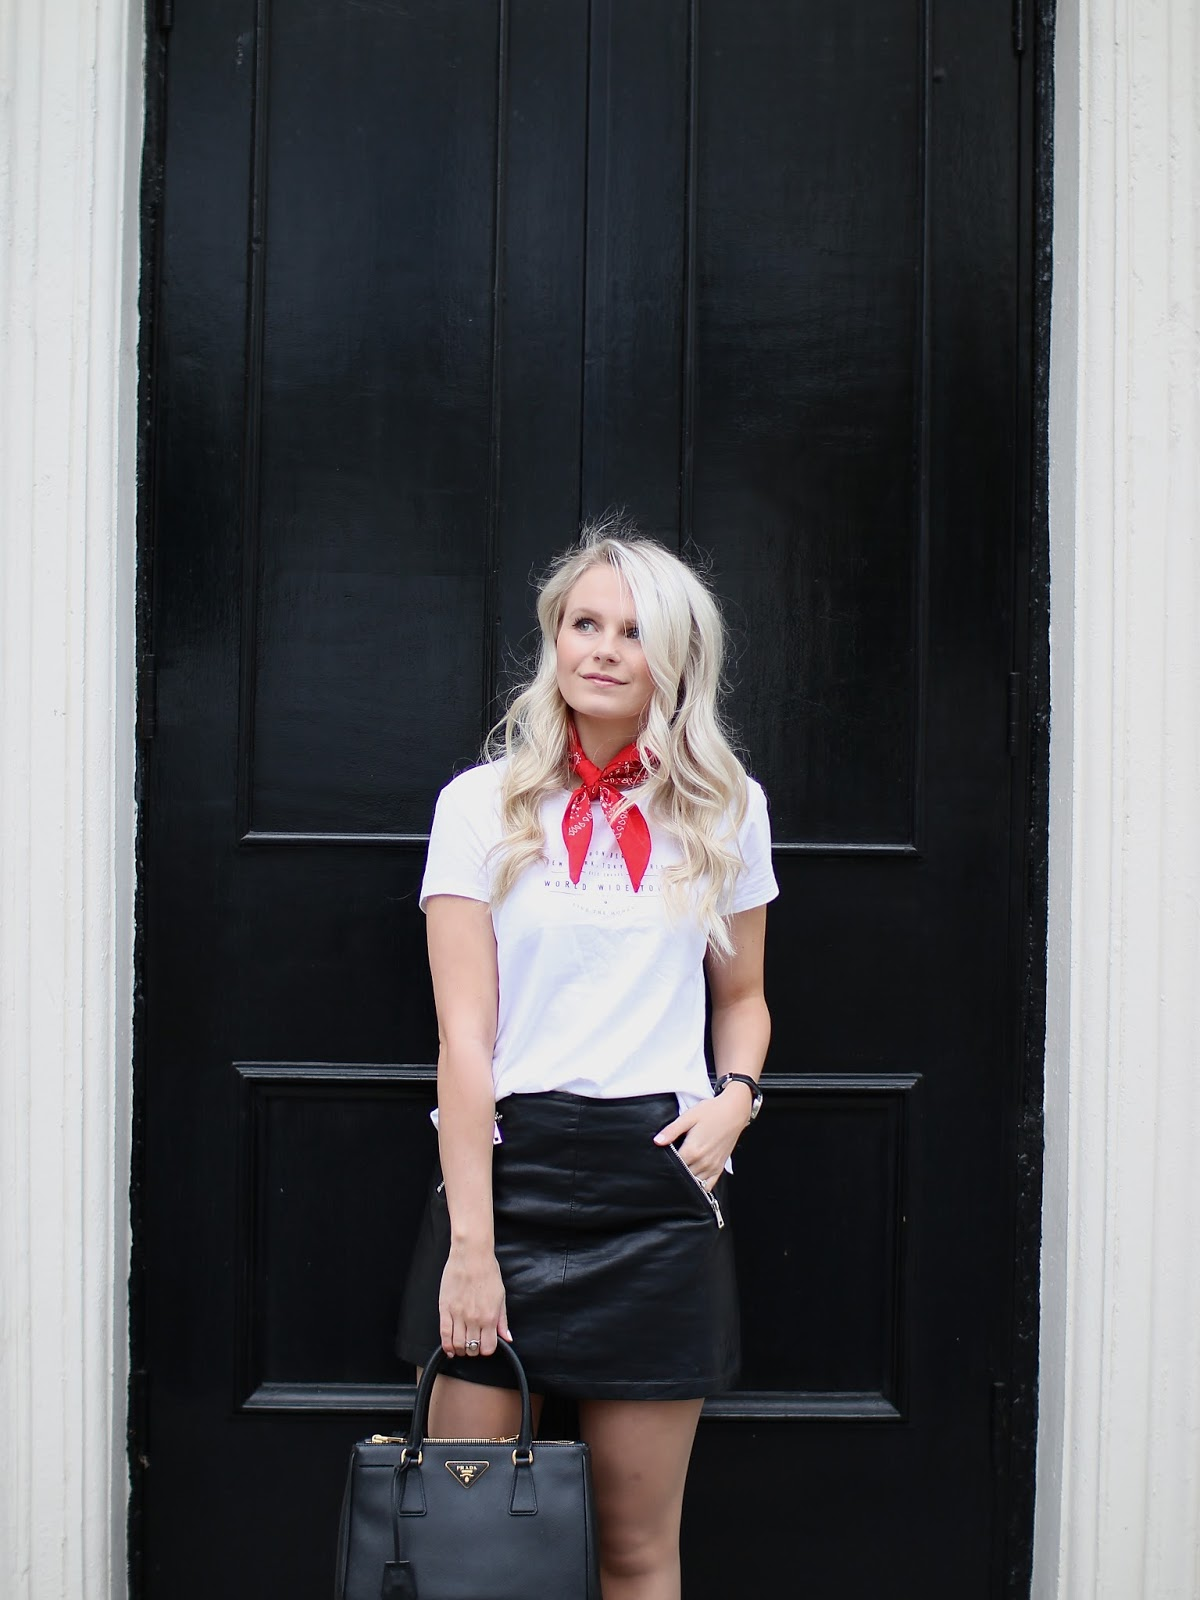 blonde women wearing leather mini skirt and graphic t shirt poses in front of London door